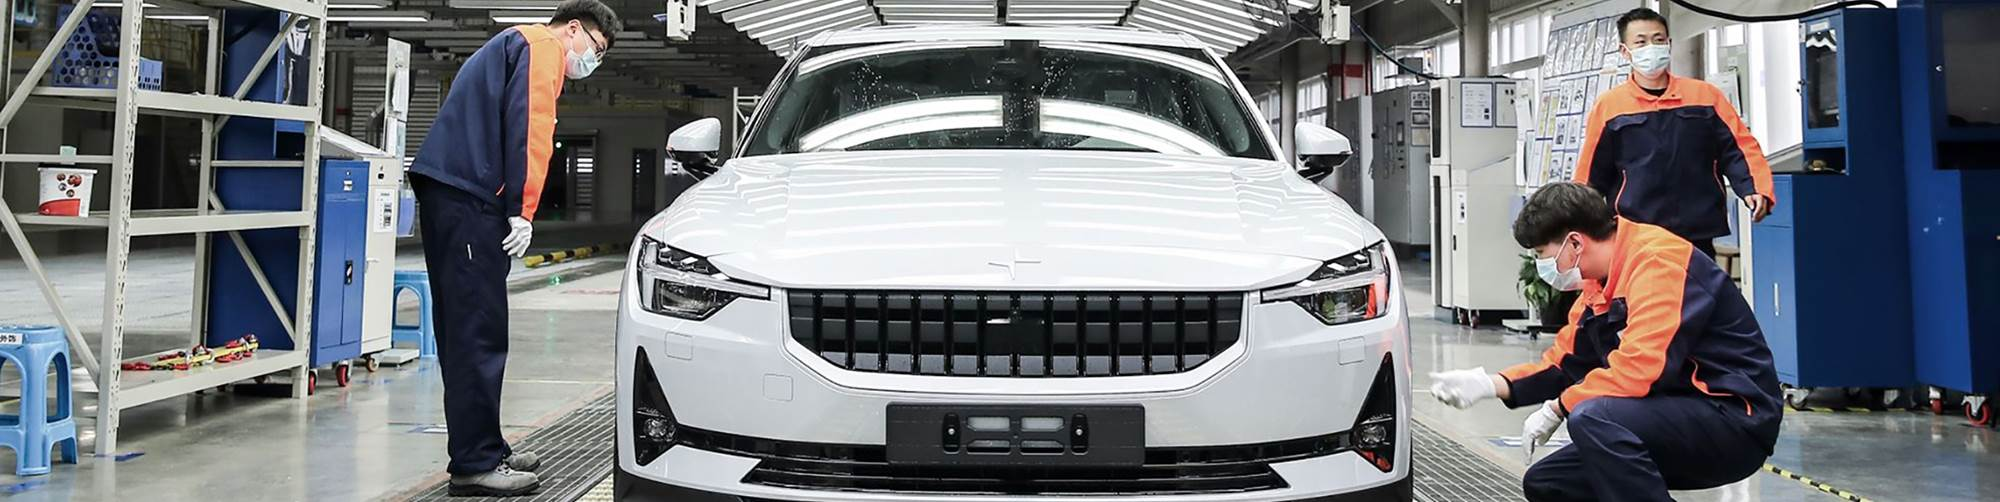 Production of the Polestar 2 electric sedan begins in China as the country resumes manufacturing after shutdowns from the coronavirus